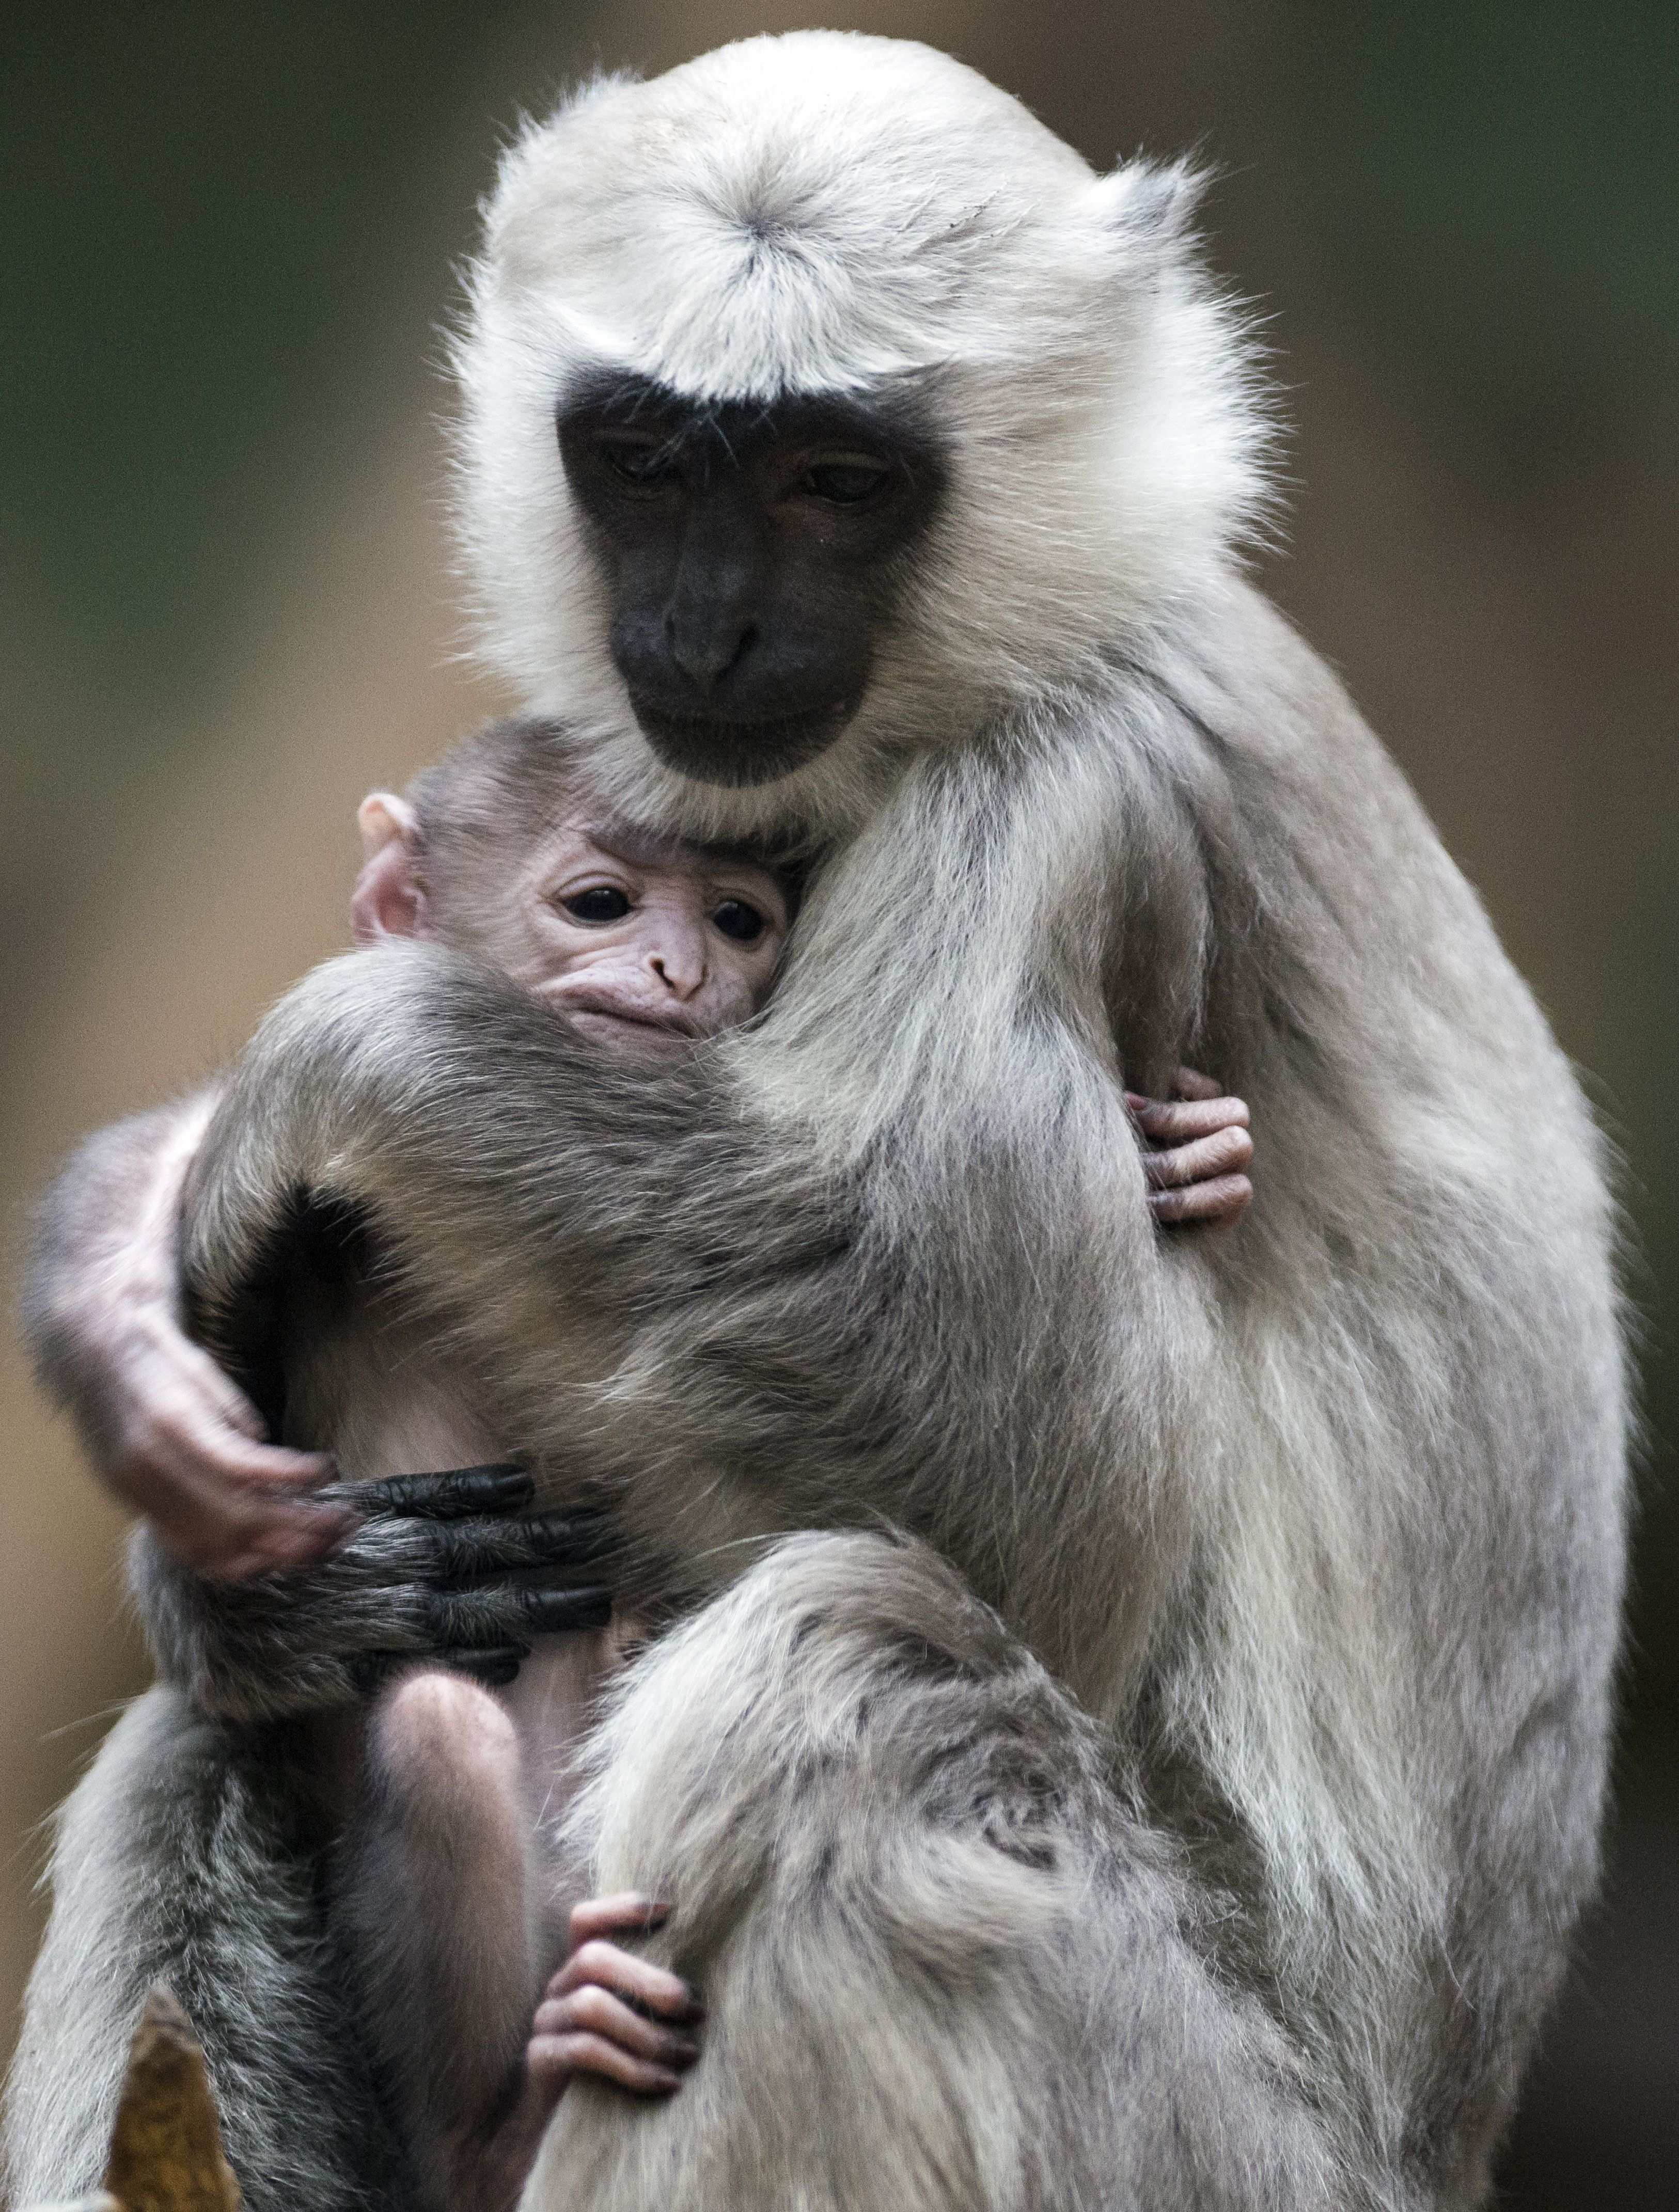 A gray langur mother named Sally holds her baby in its enclosure in Berlin's Zoo on February 21, 2014 in Berlin.